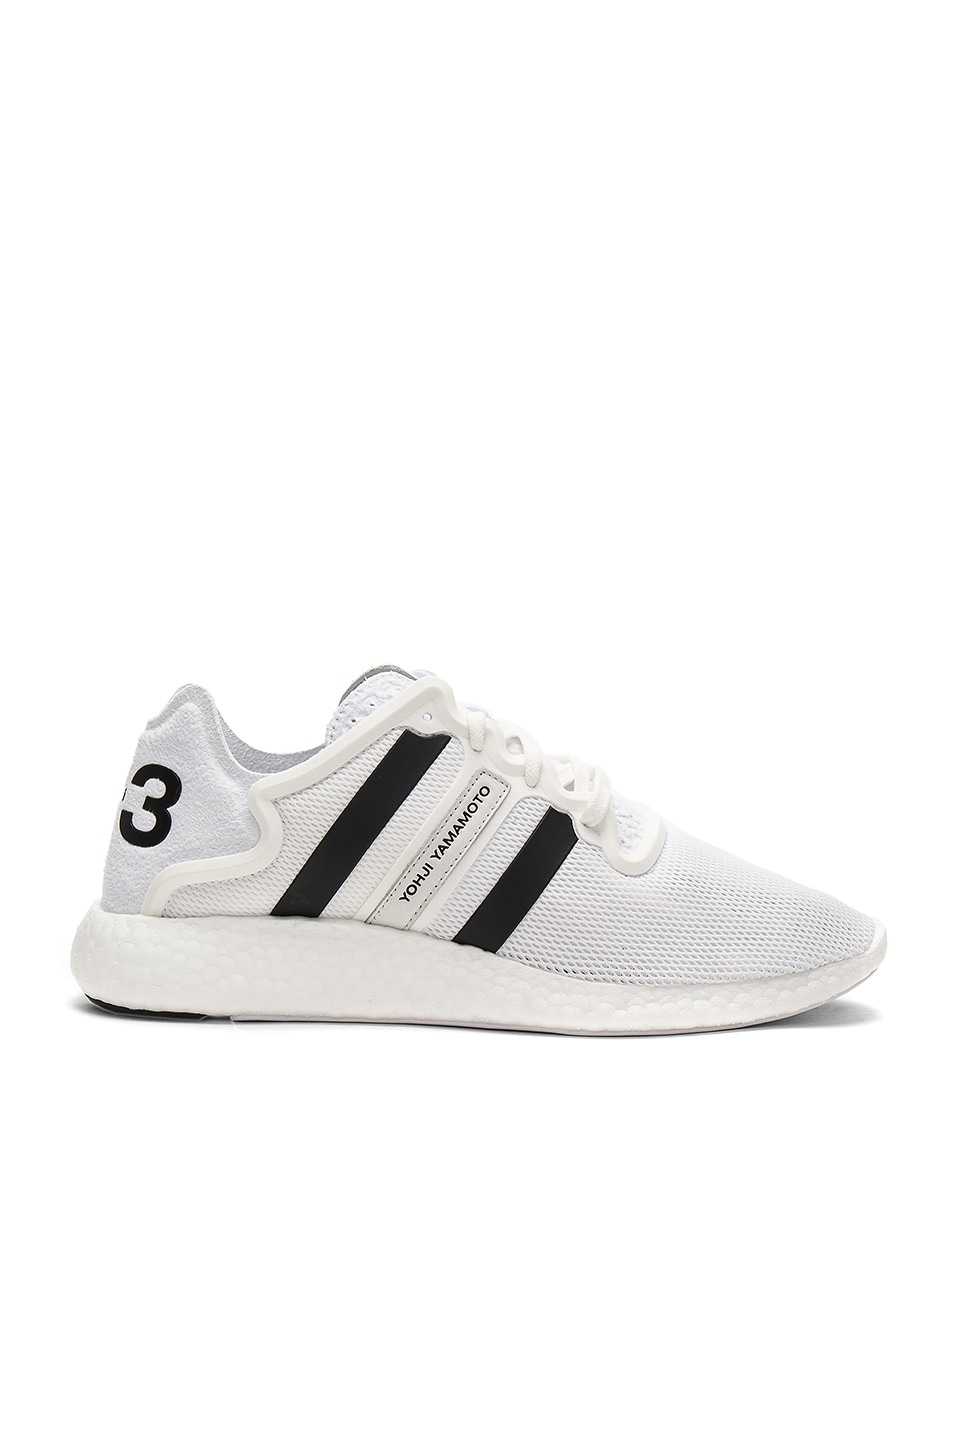 96394c16c62f Y-3 Yohji Yamamoto Yohji Run in FTW White   Crystal White   Core Black